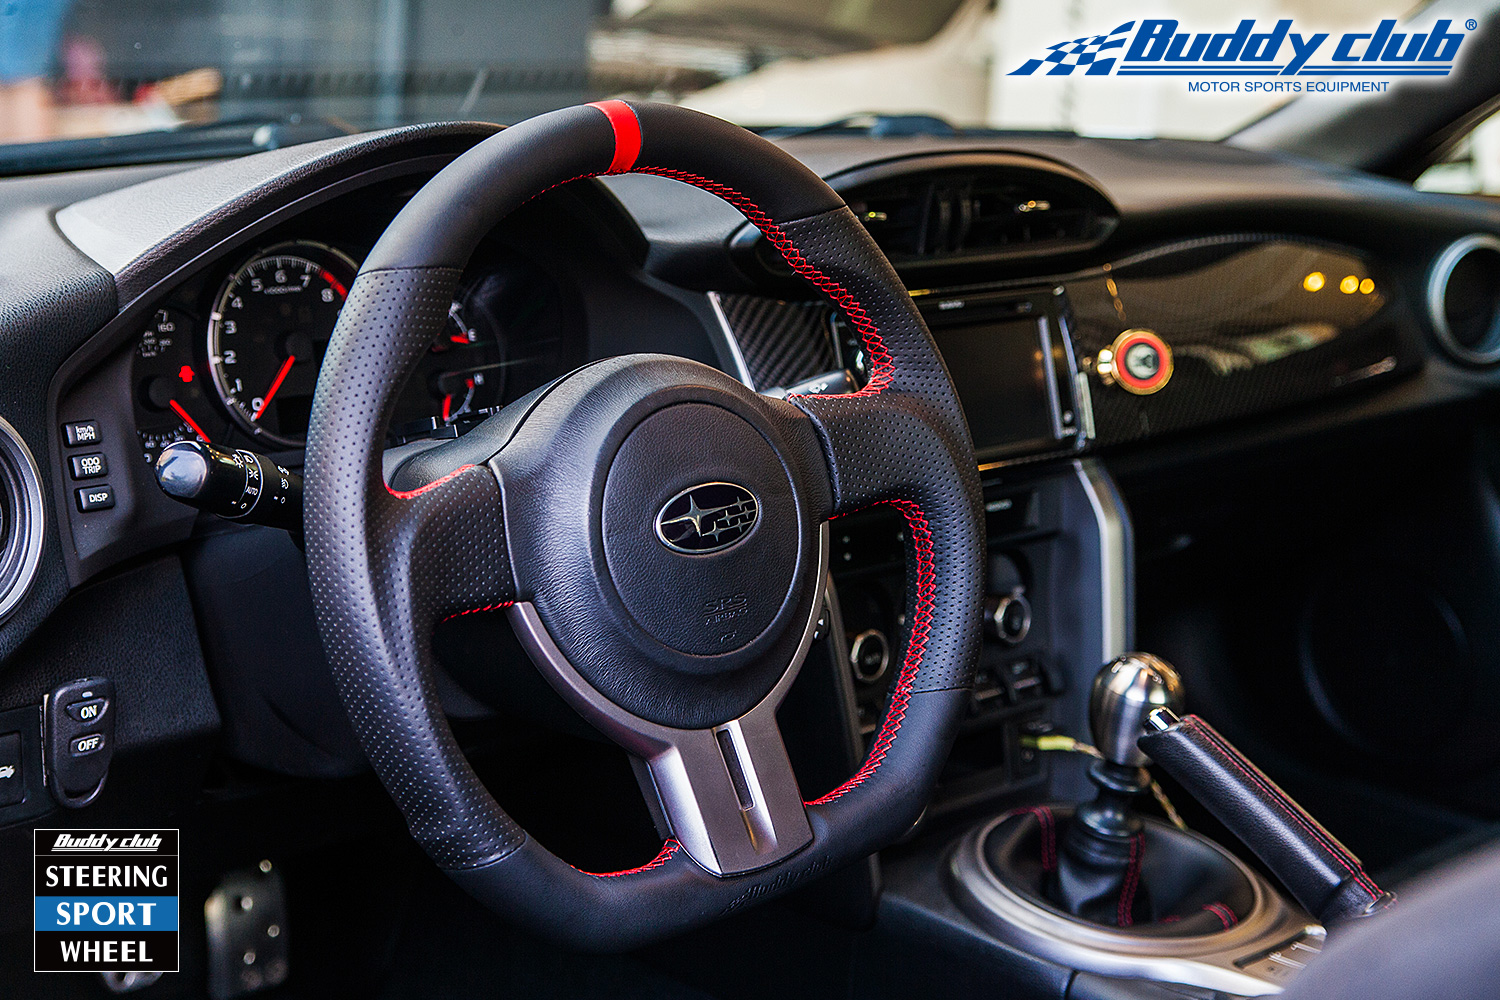 BuddyClub_Steering_Wheel_BRZ_3